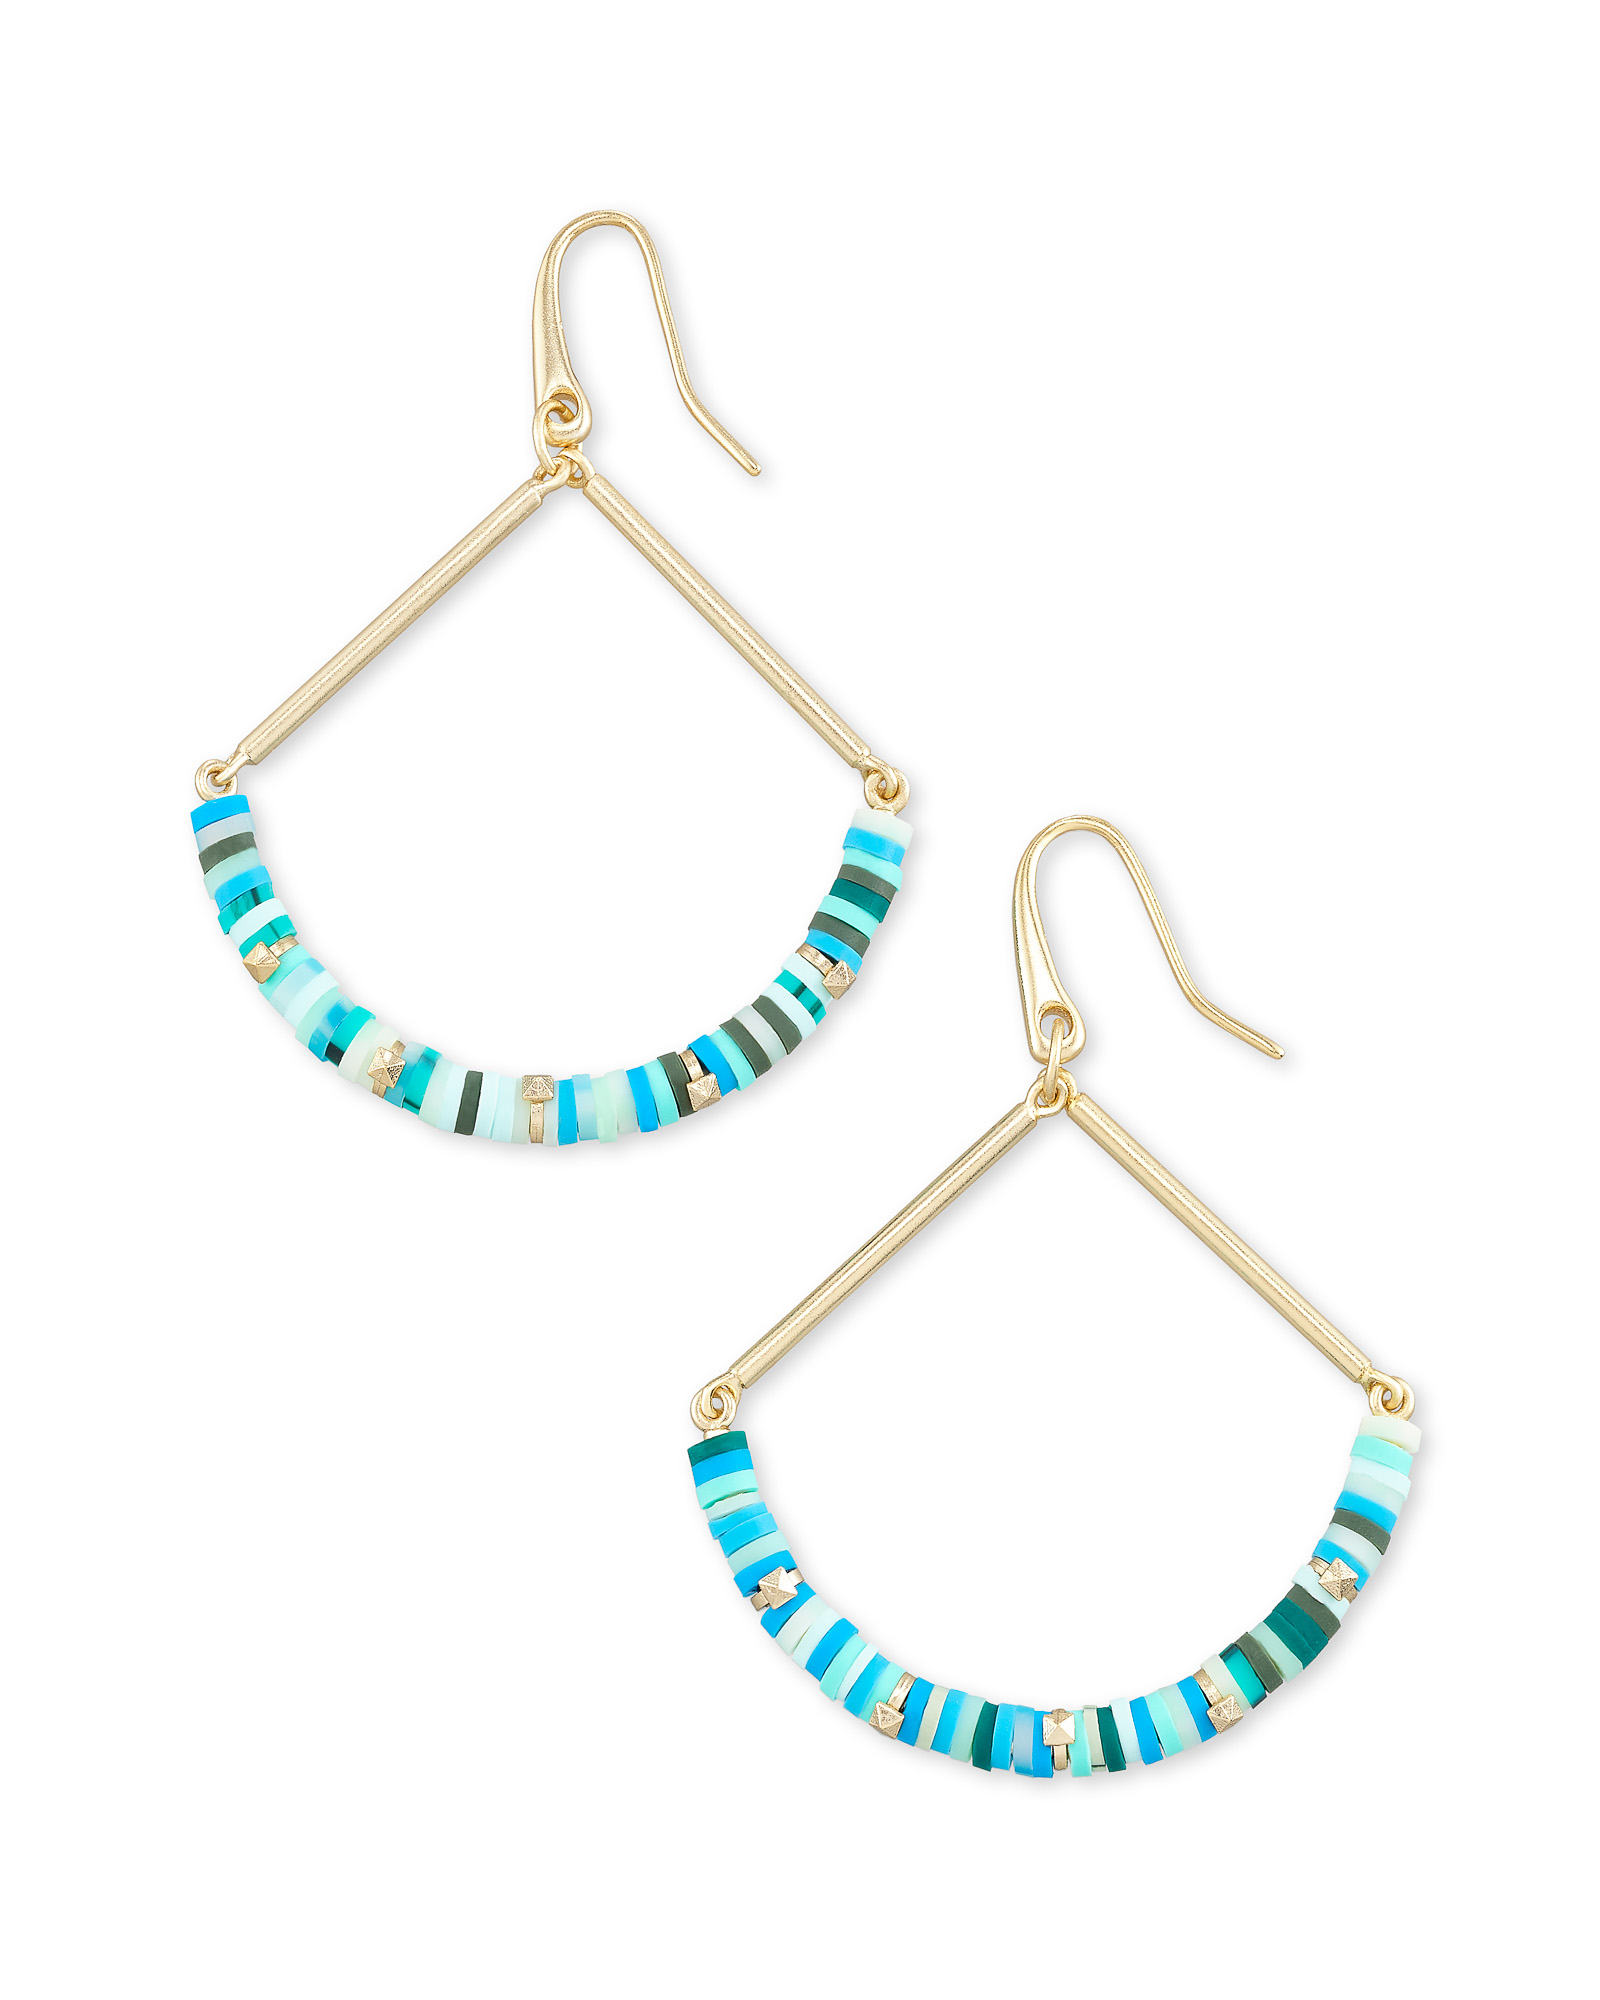 Reece Gold Drop Earrings in Sea Green Mix